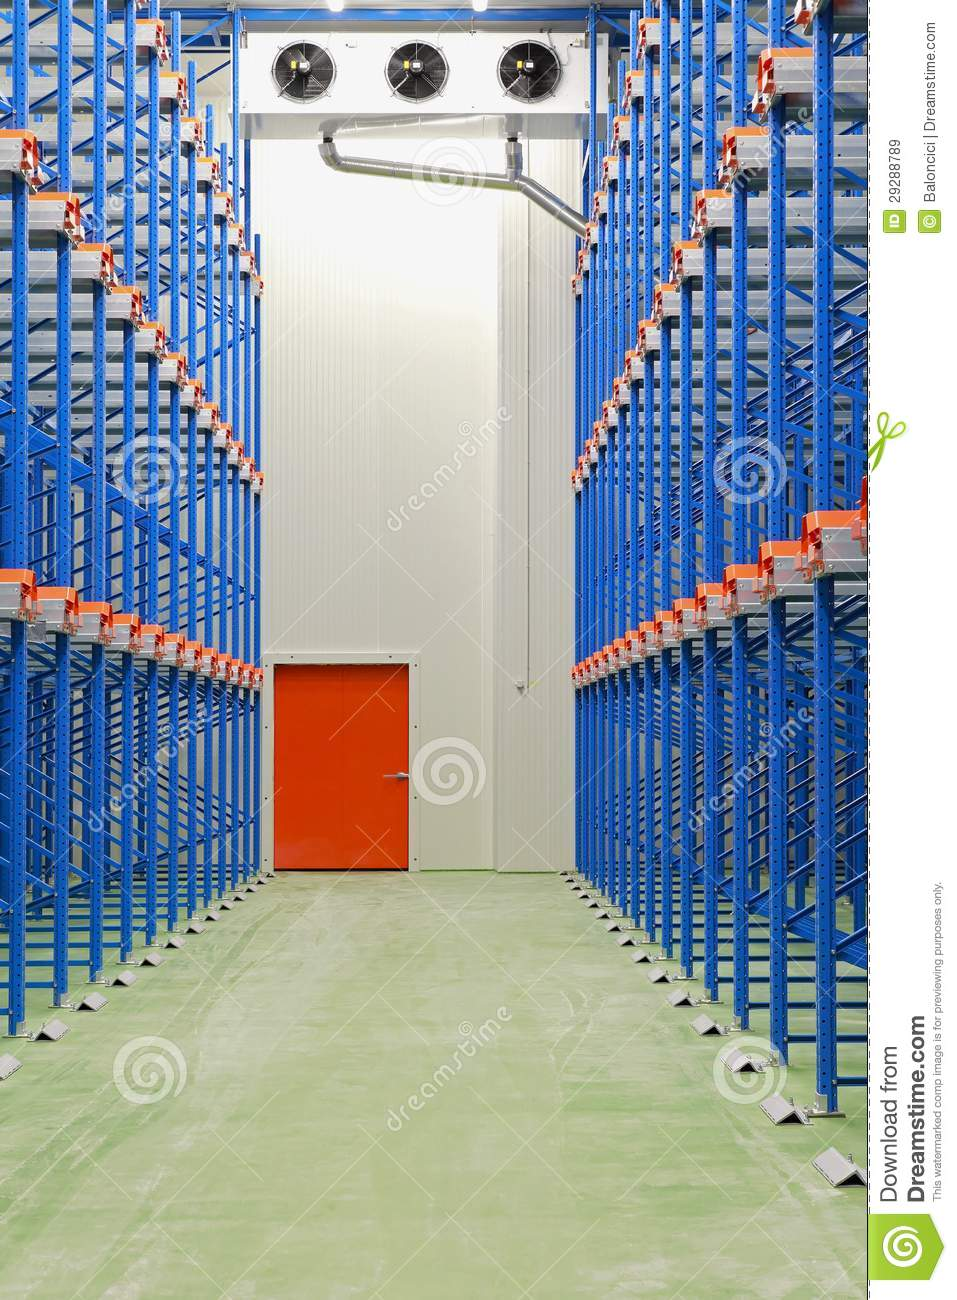 Refrigerated Warehouse Royalty Free Stock Images Image